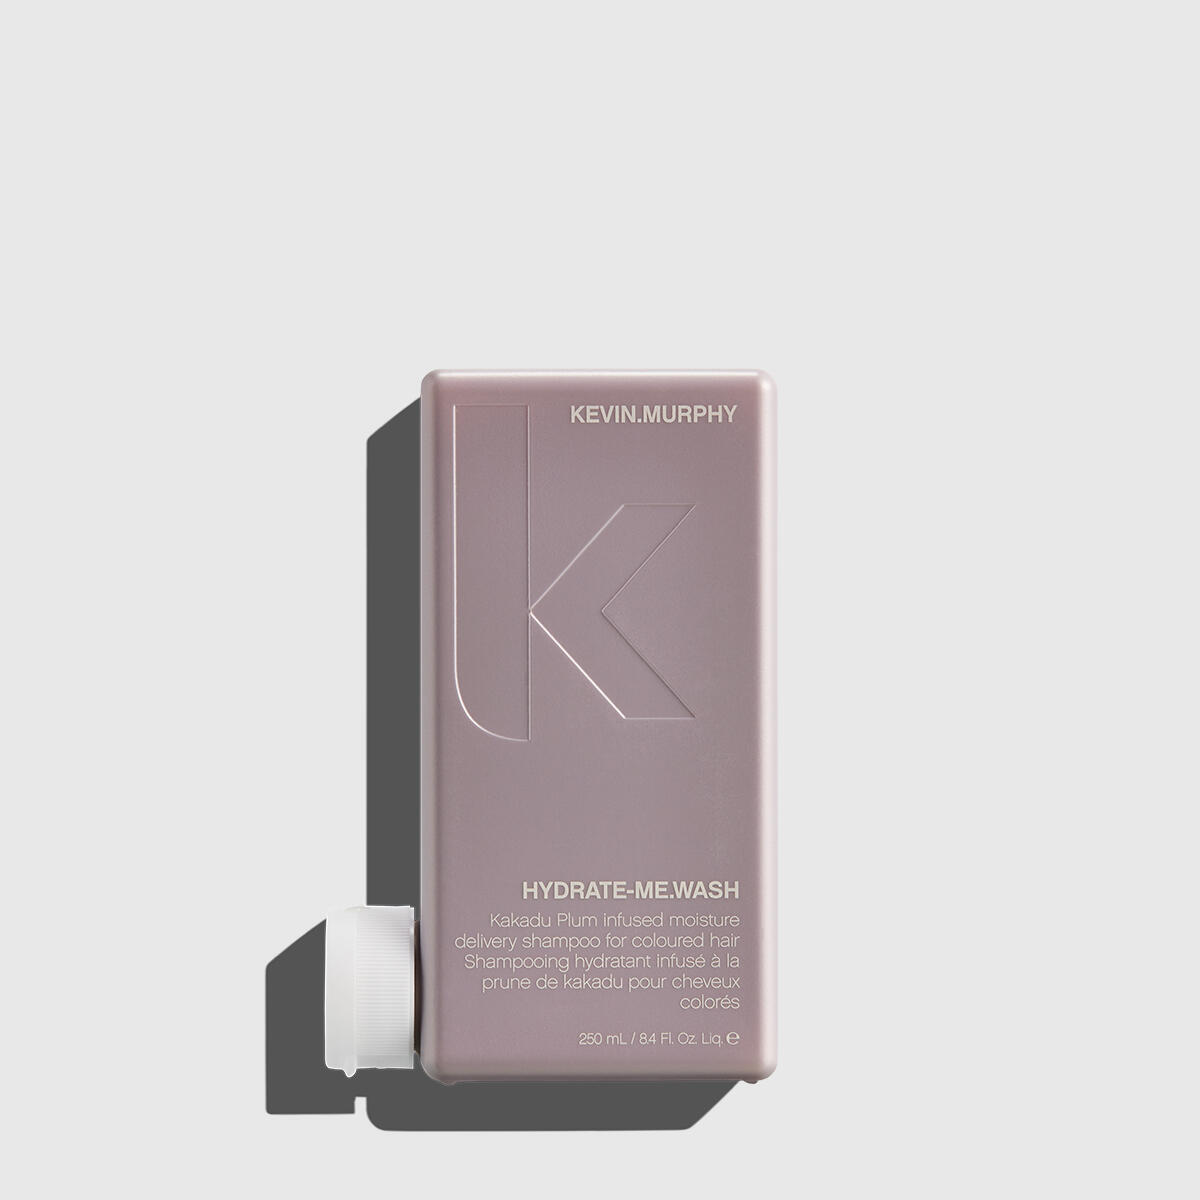 Kevin Murphy Hydrate-Me Wash null